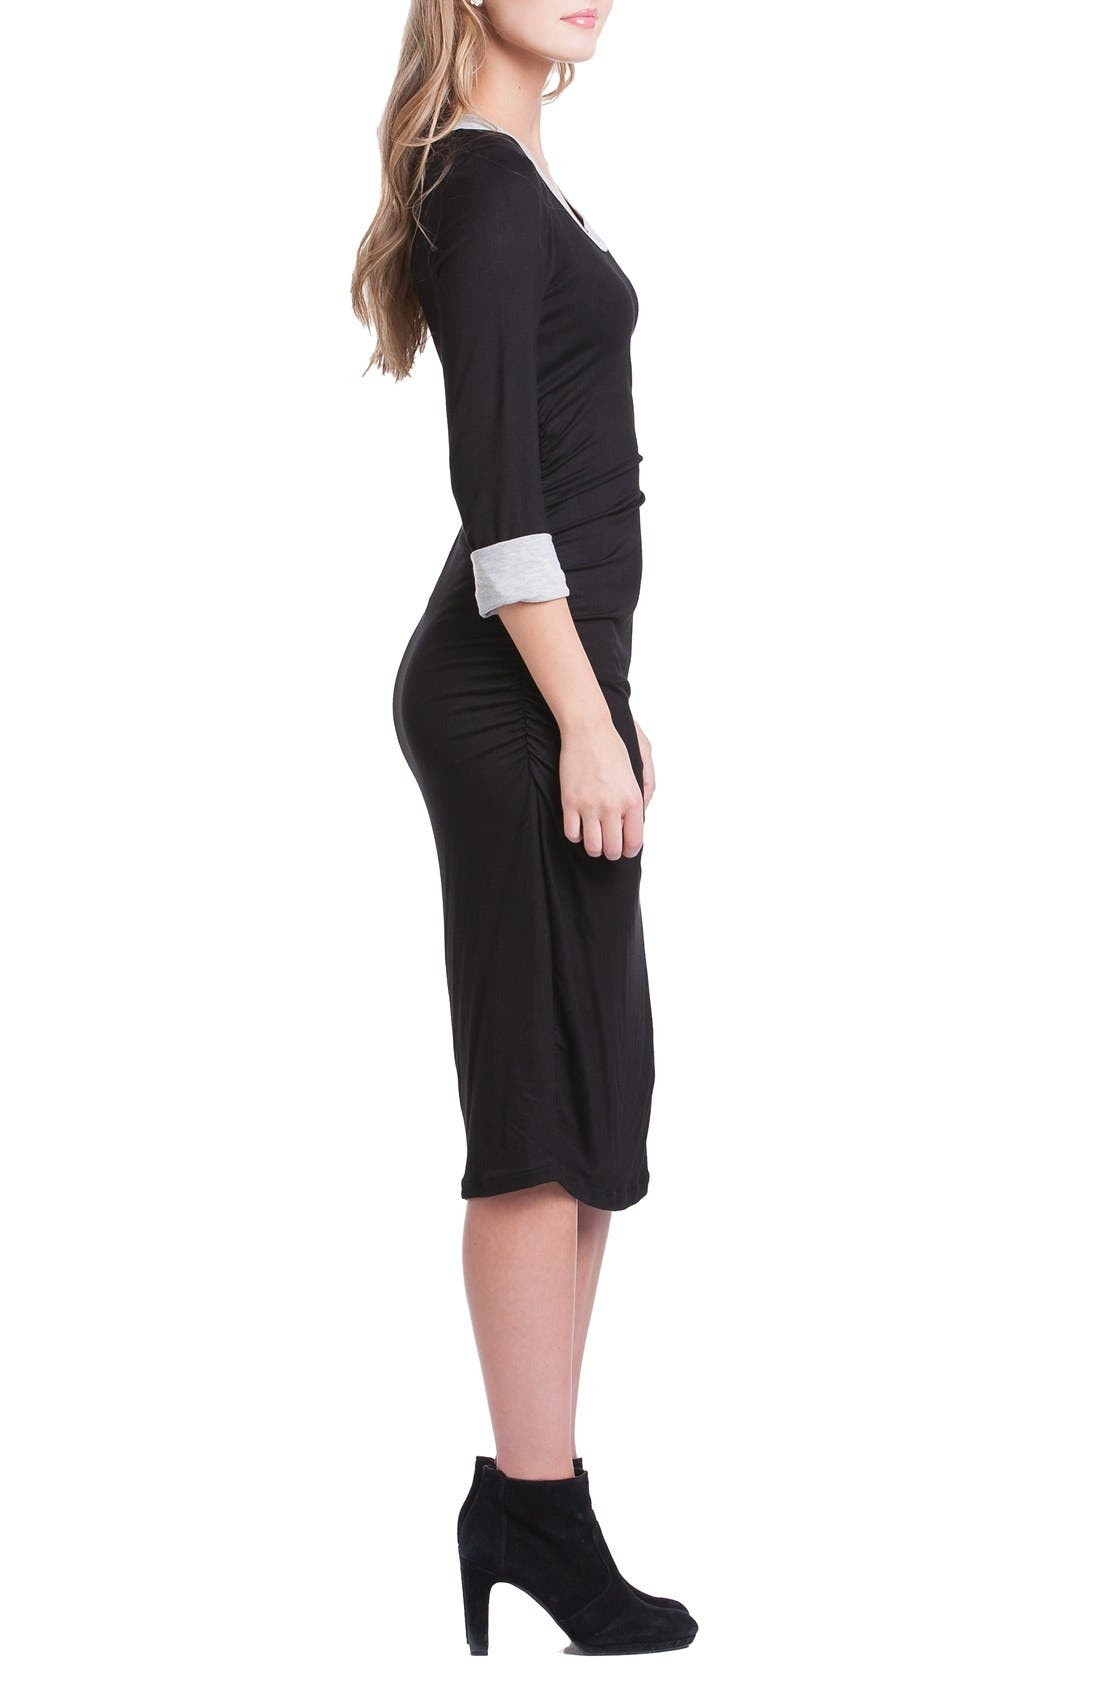 Body-Con Maternity Dress,                             Alternate thumbnail 4, color,                             Black/ Grey